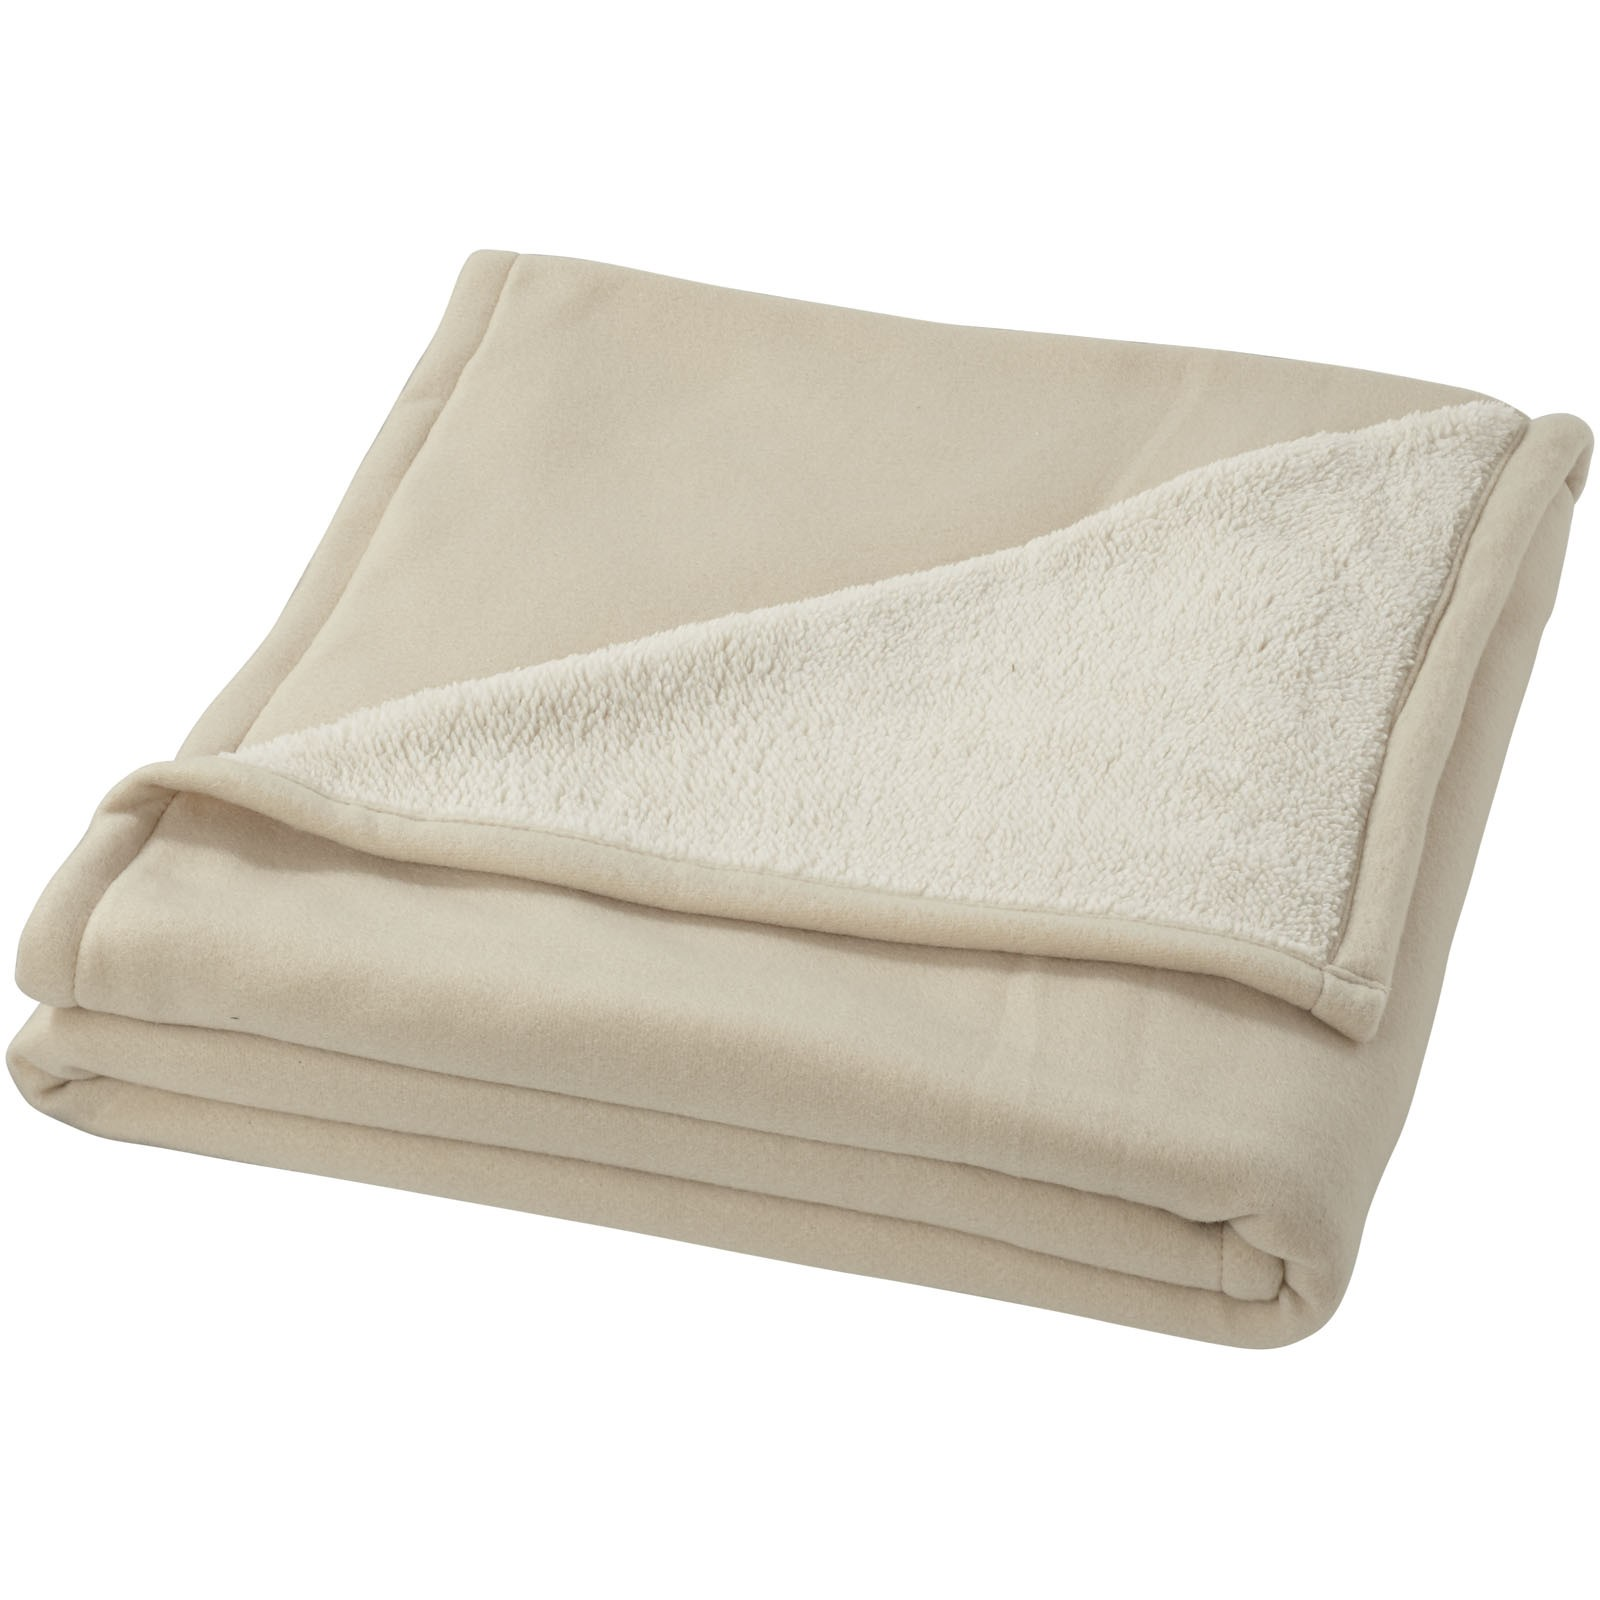 Springwood soft fleece and sherpa plaid blanket - Off white